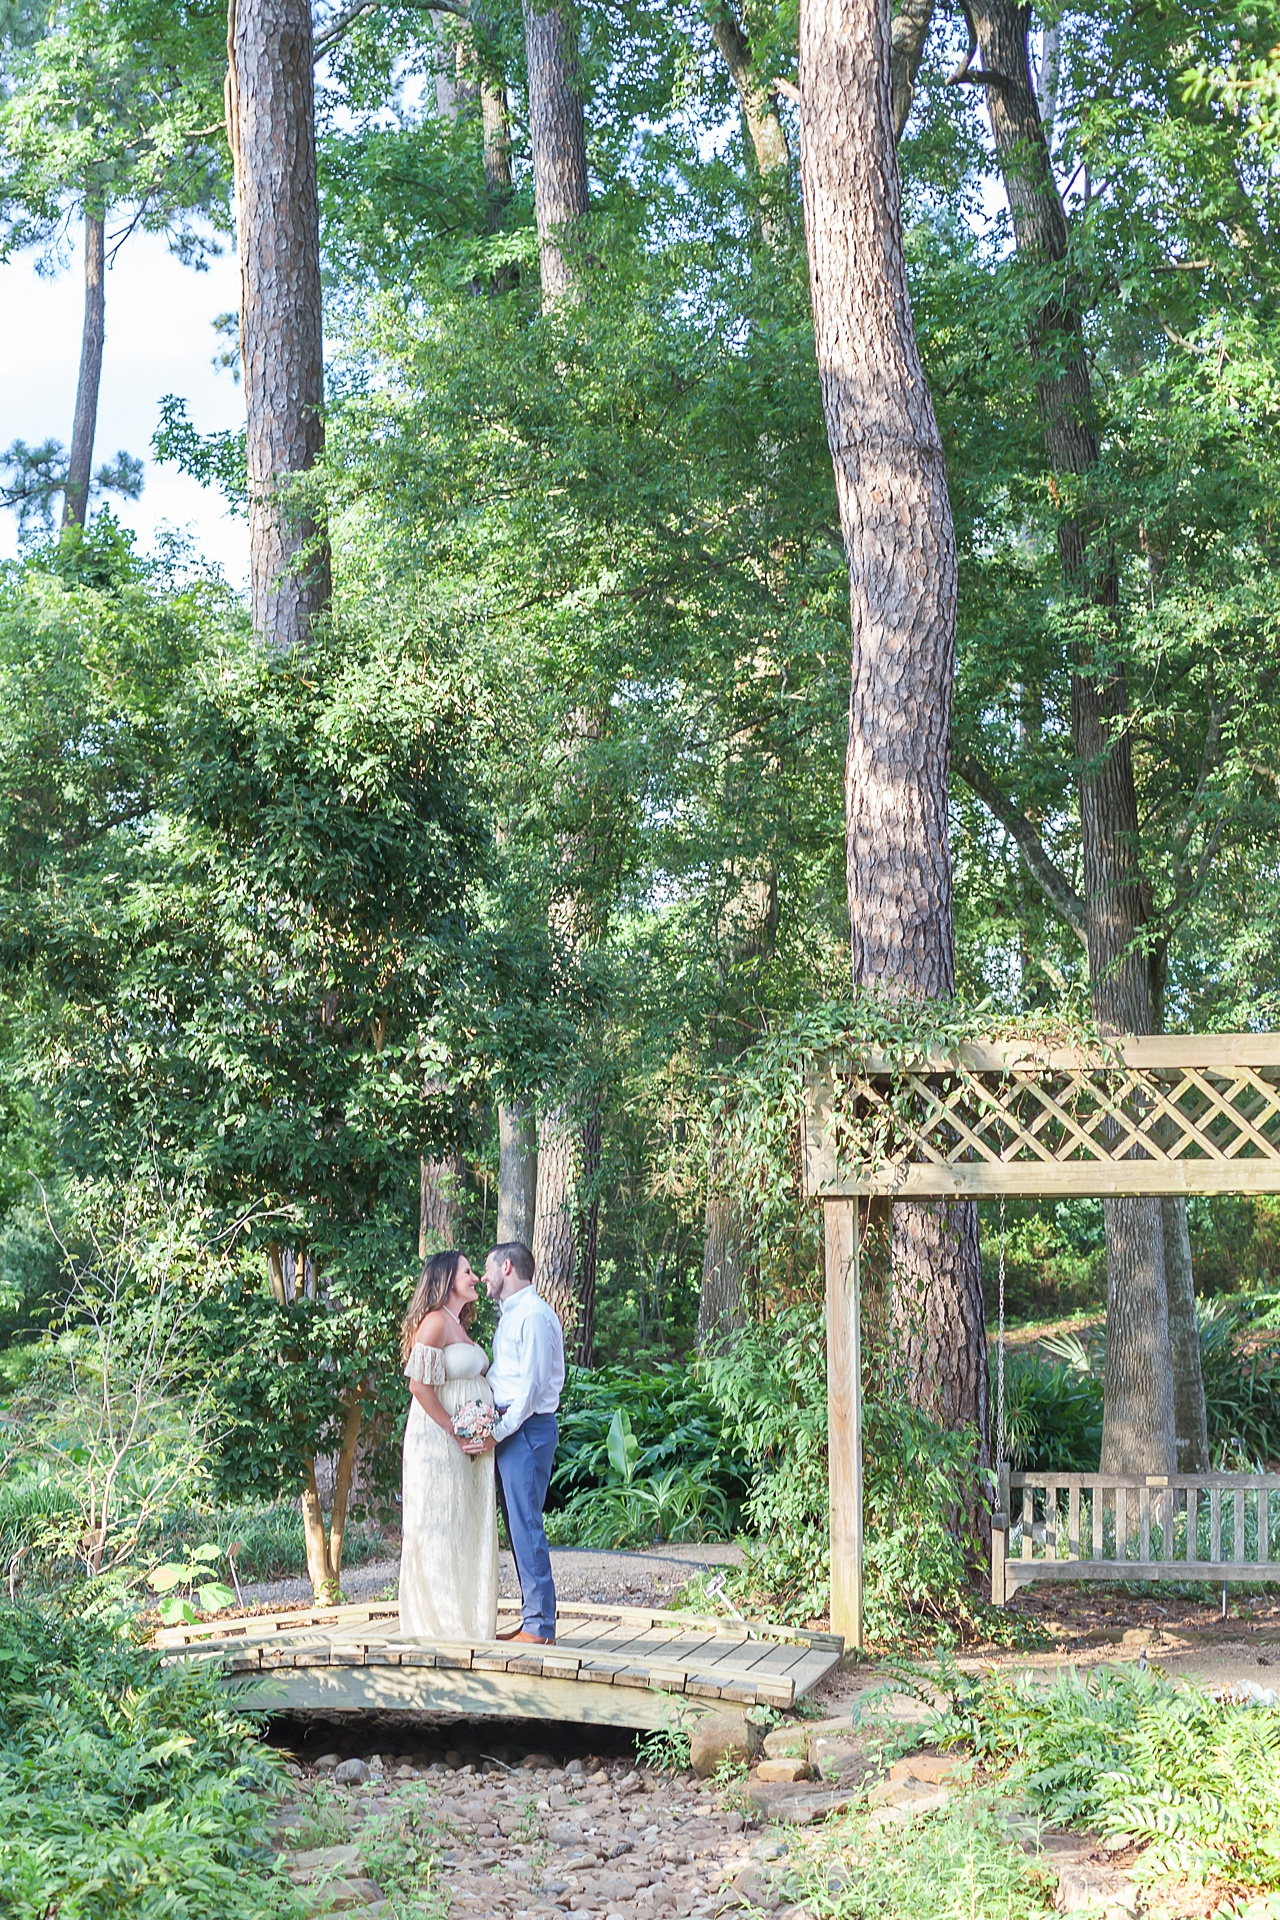 beautiful nature-themed maternity session at mercer arboretum by kristal bean photography